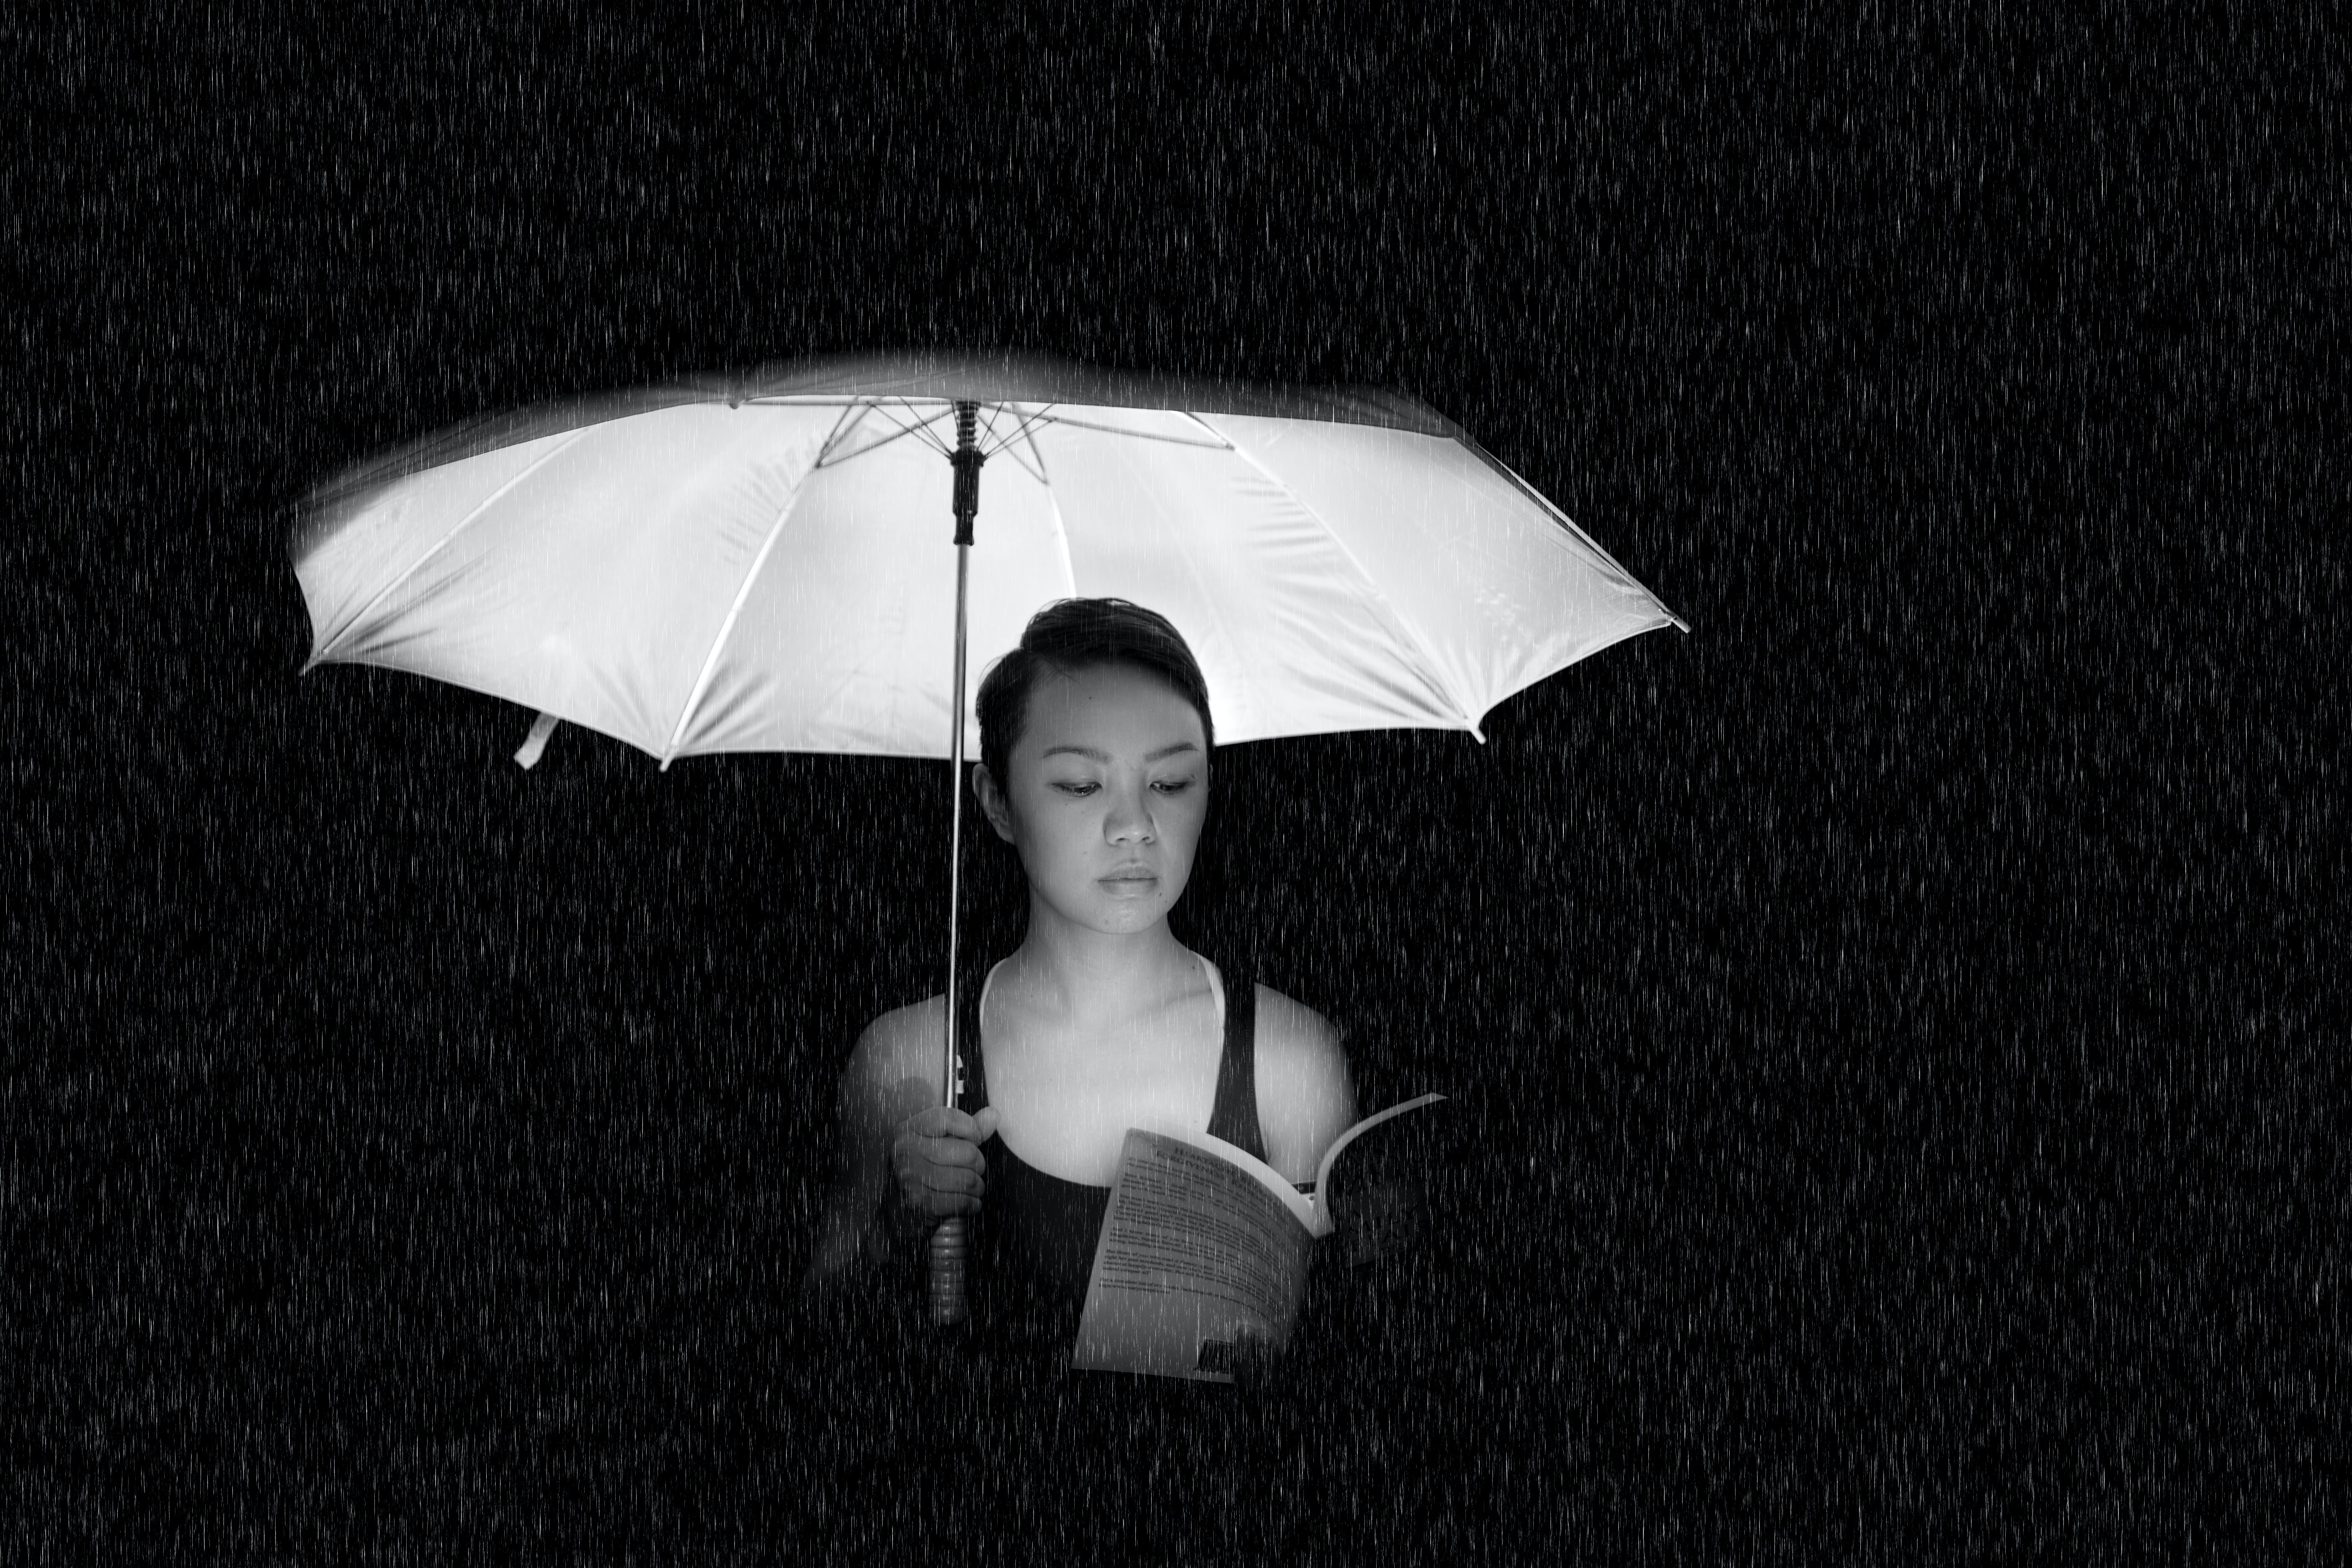 Woman Holding an Umbrella Greyscale Photo